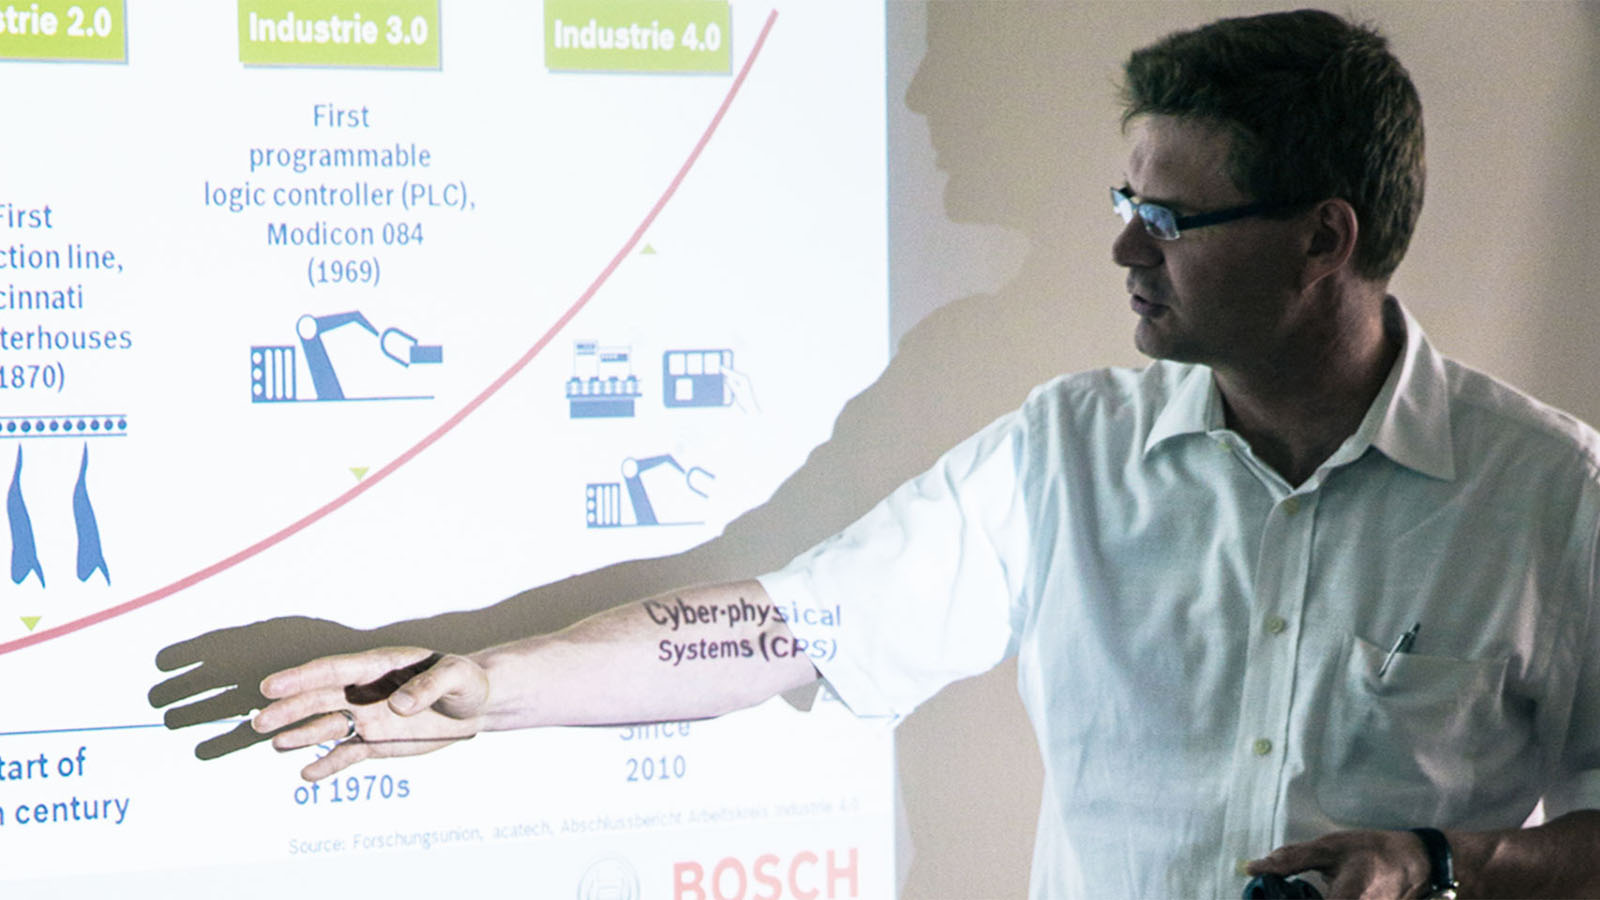 Lab Talk: Dr. Stefan Ferber gave us a lecture about Industry 4.0